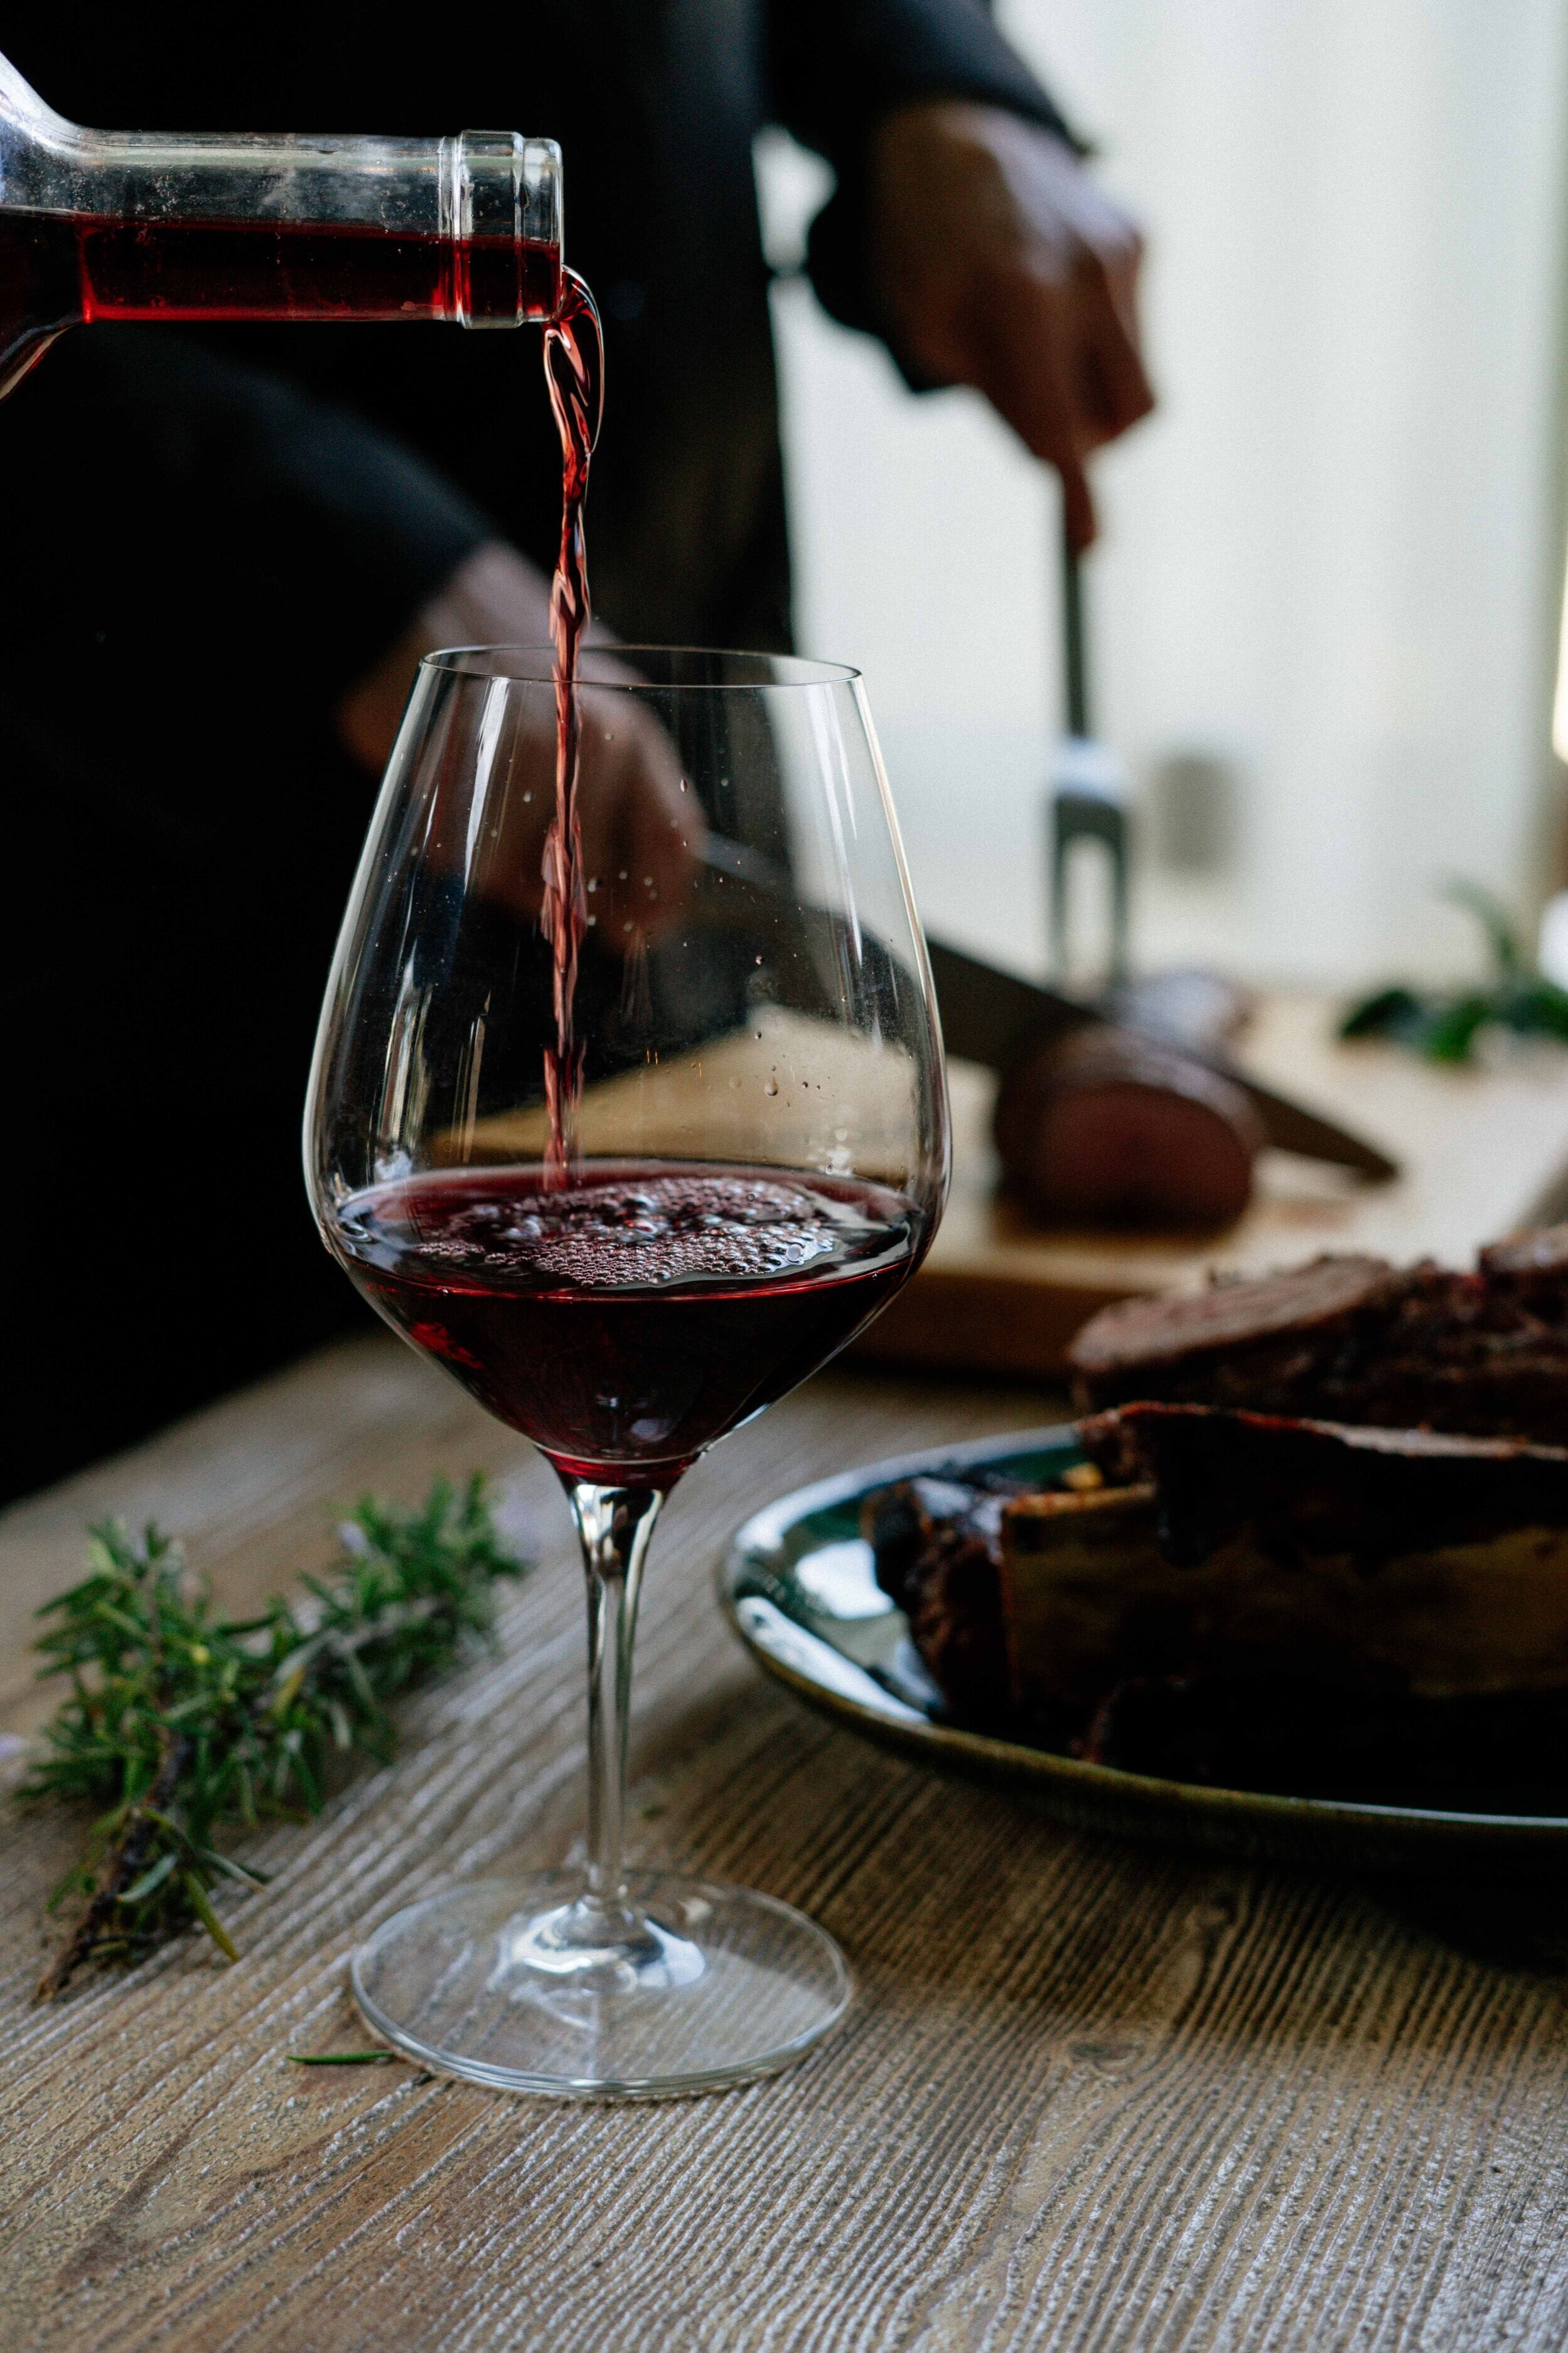 Pouring+red+wine+into+glass